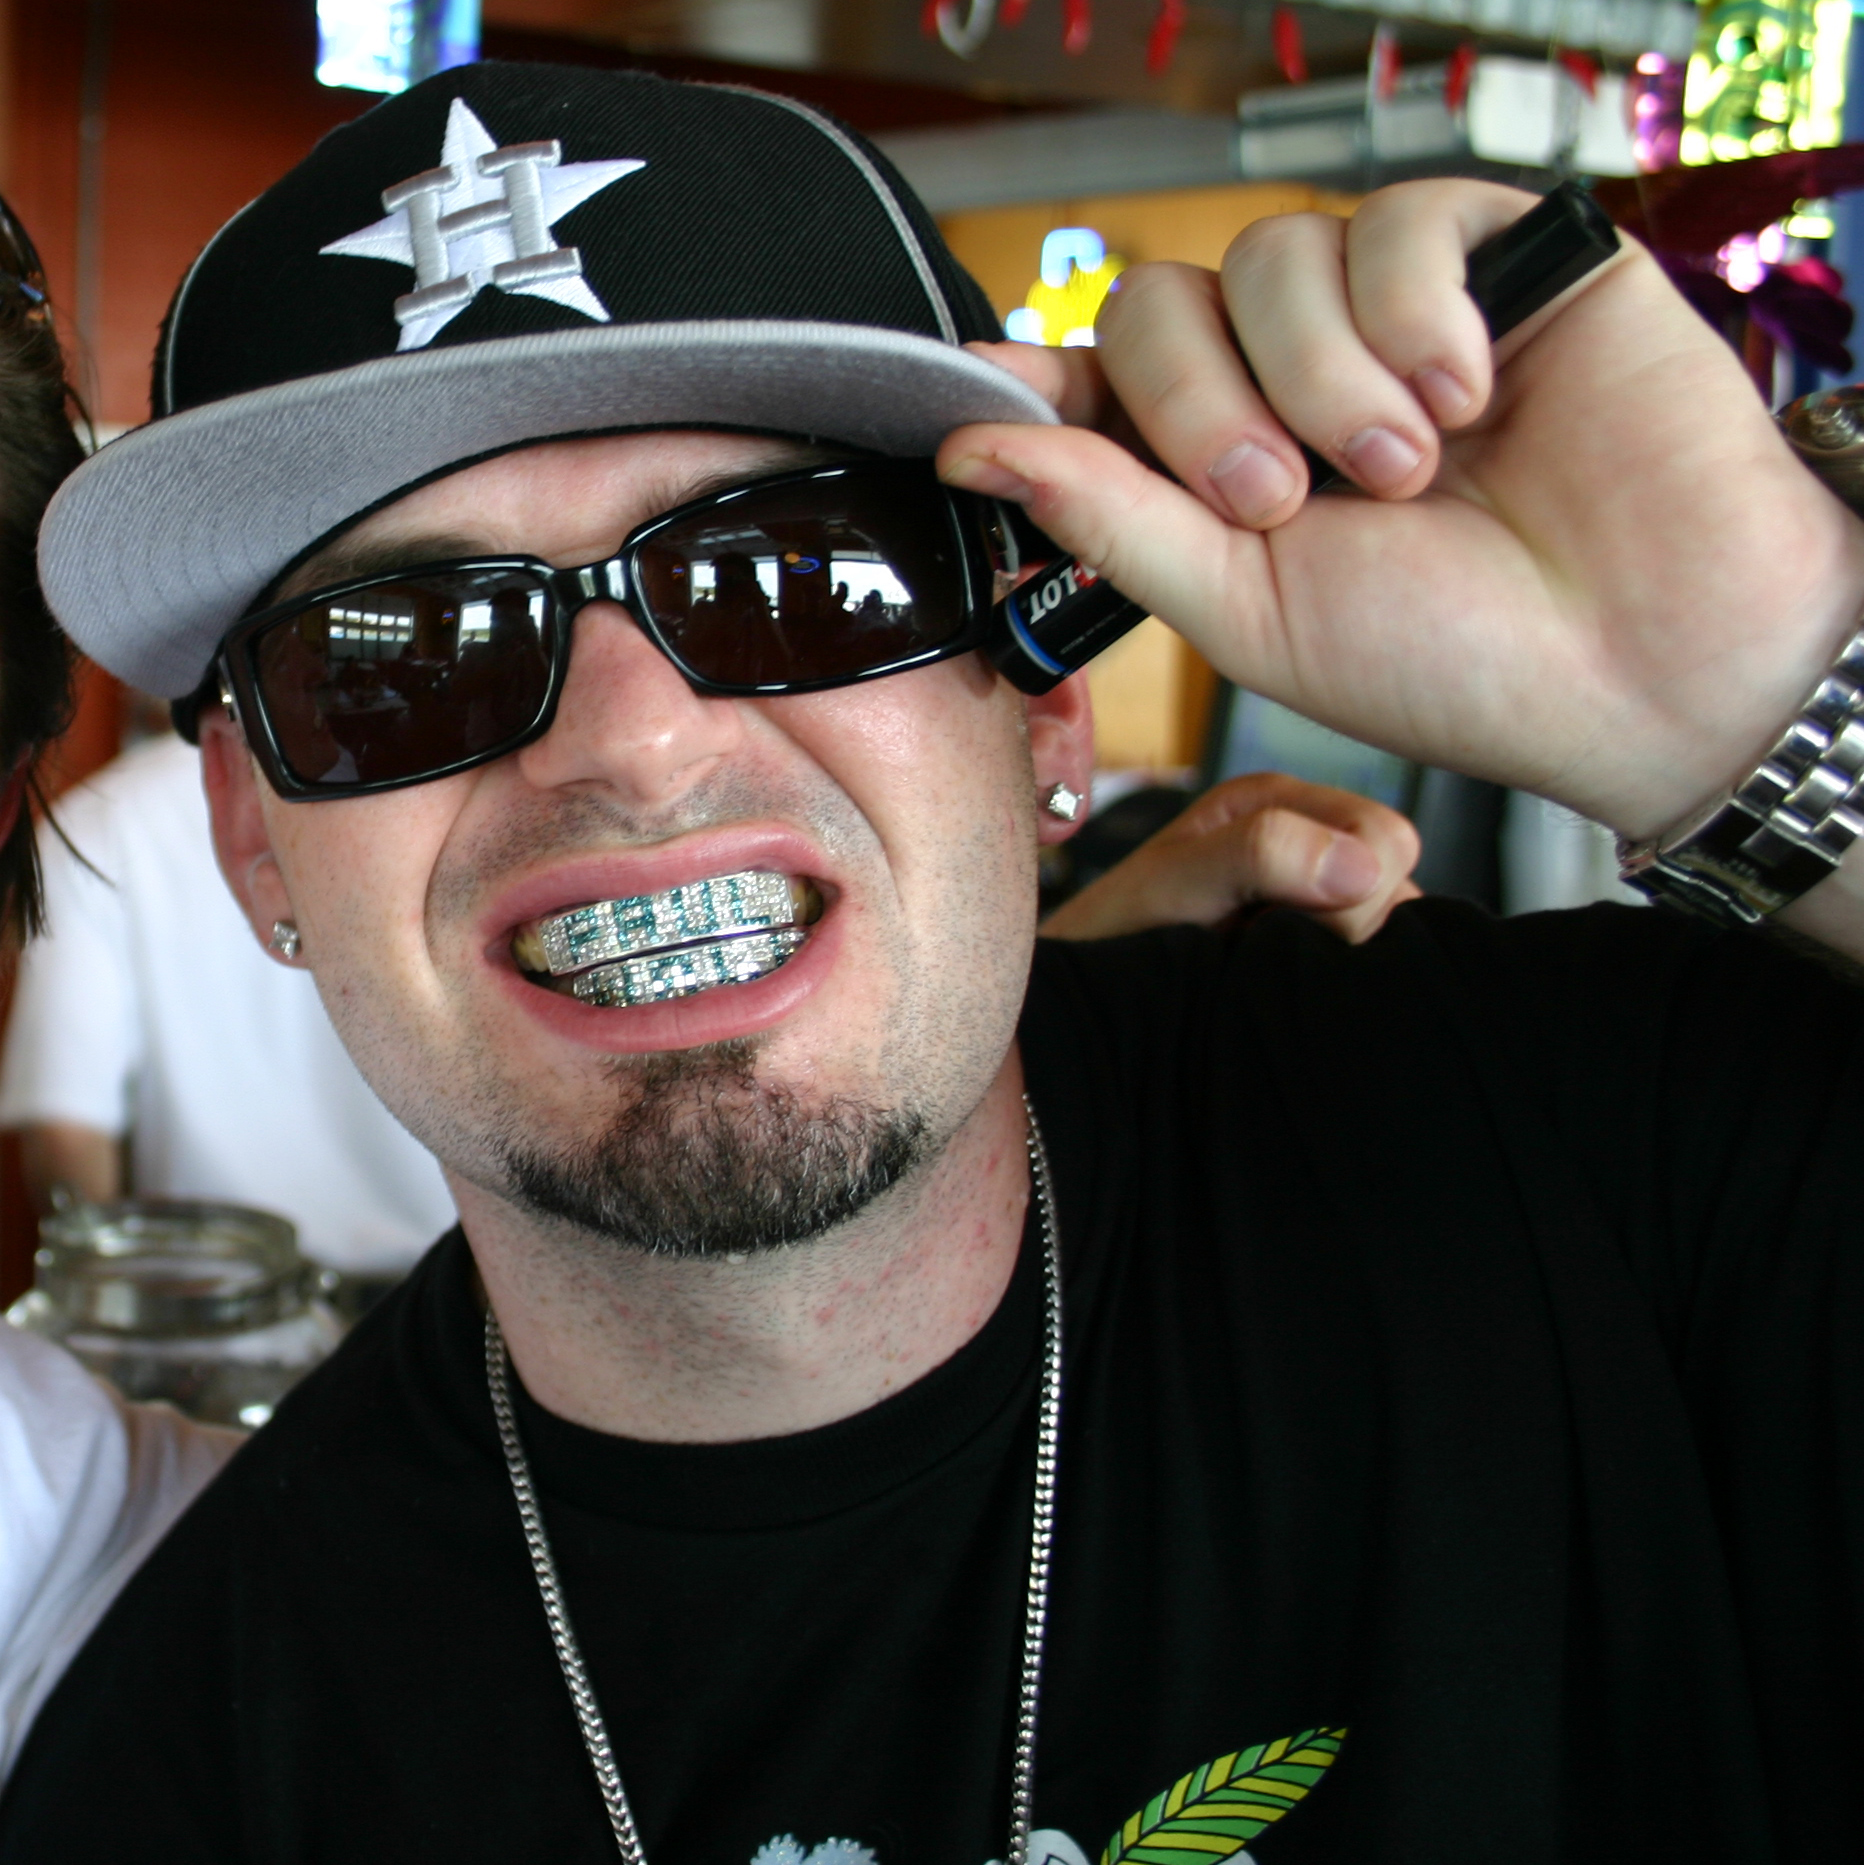 Grammy Award nominated Paul Wall